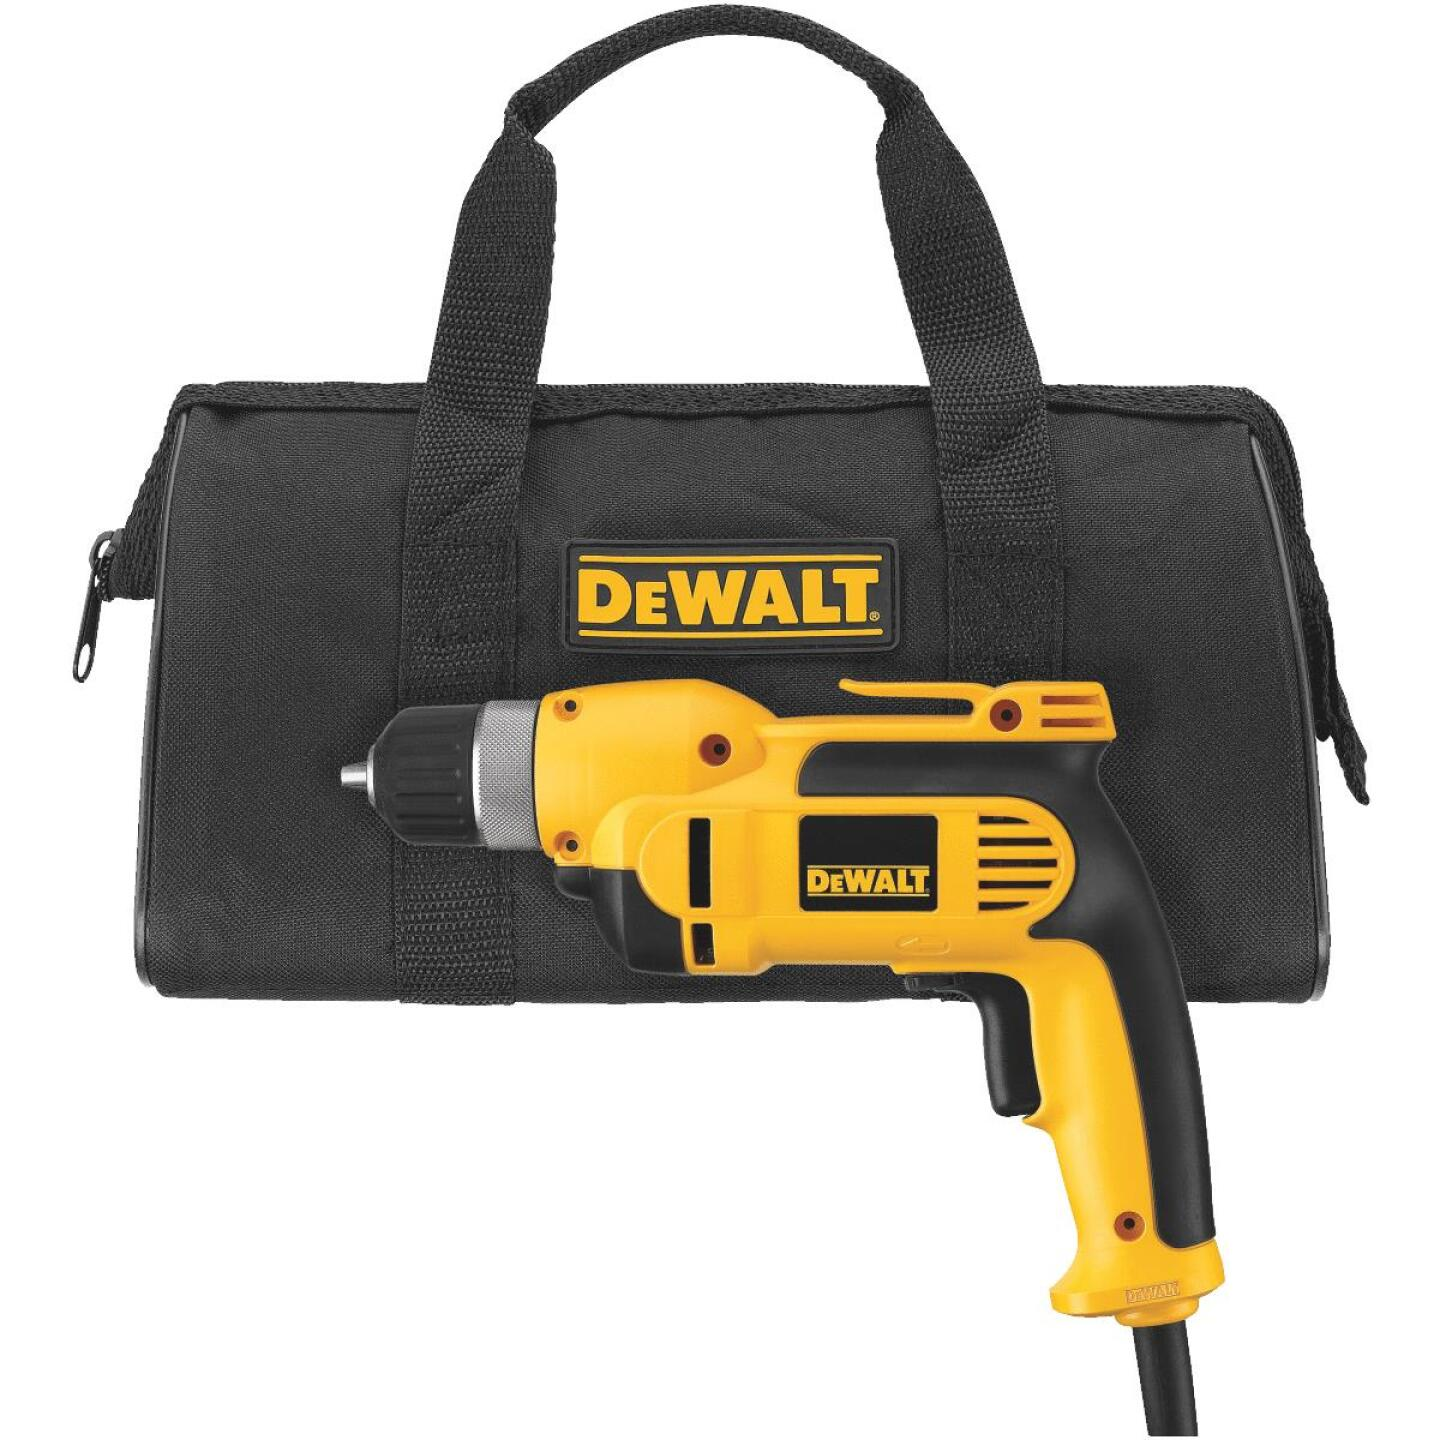 DeWalt 3/8 In. 8-Amp Keyless Electric Drill with Case Image 2